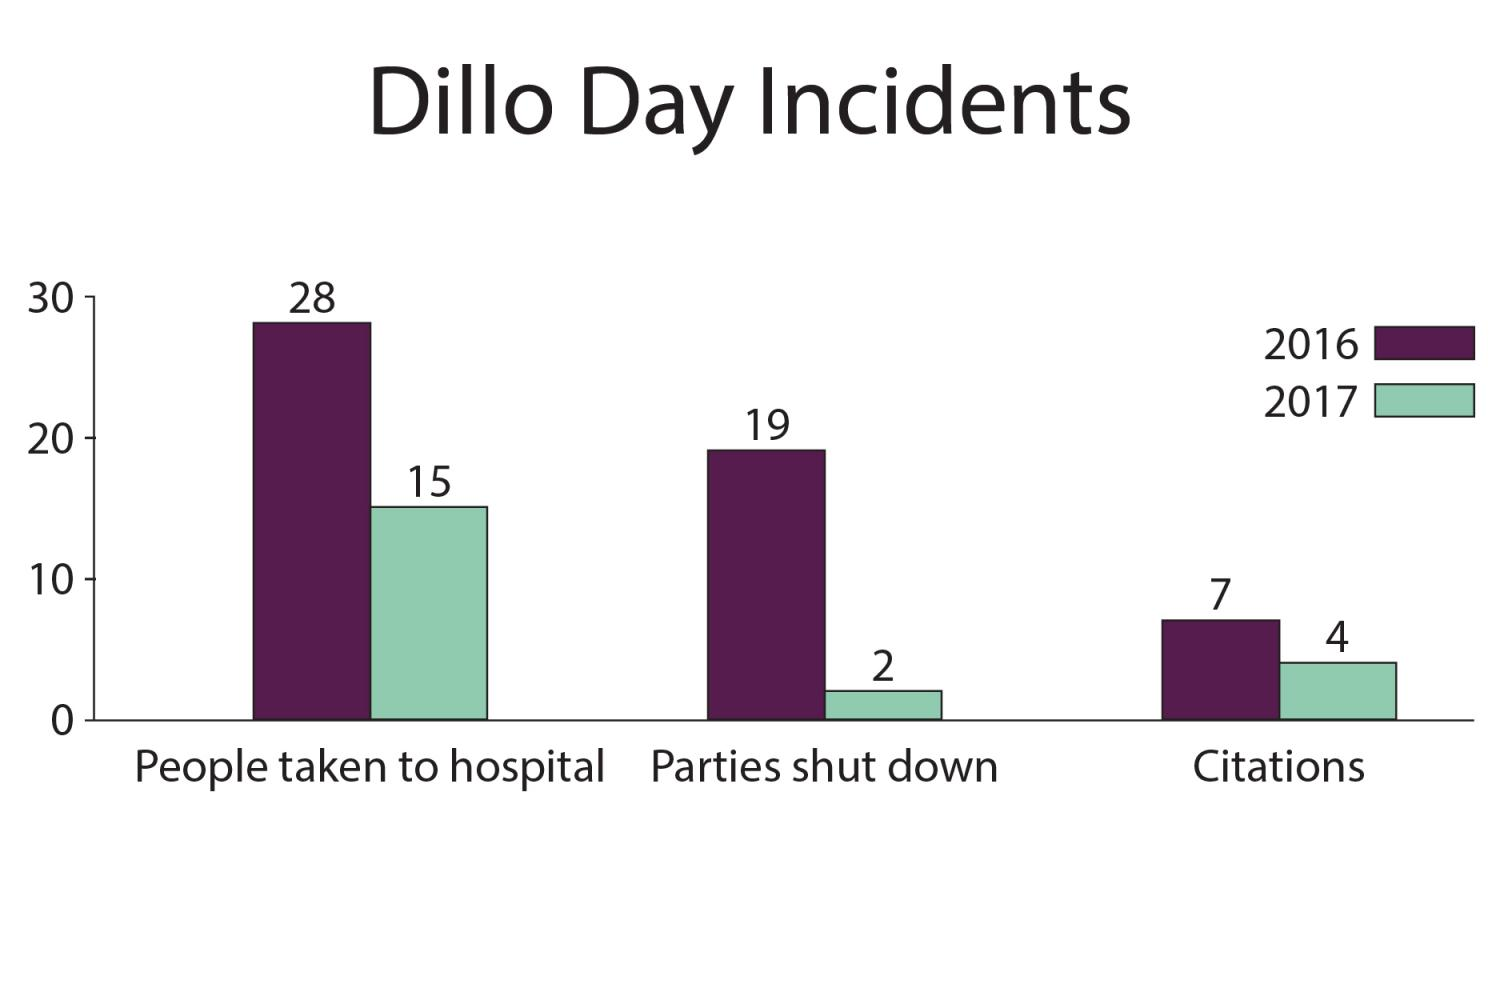 Dillo+Day+party+shutdowns%2C+citations%2C+hospital+transports+all+down